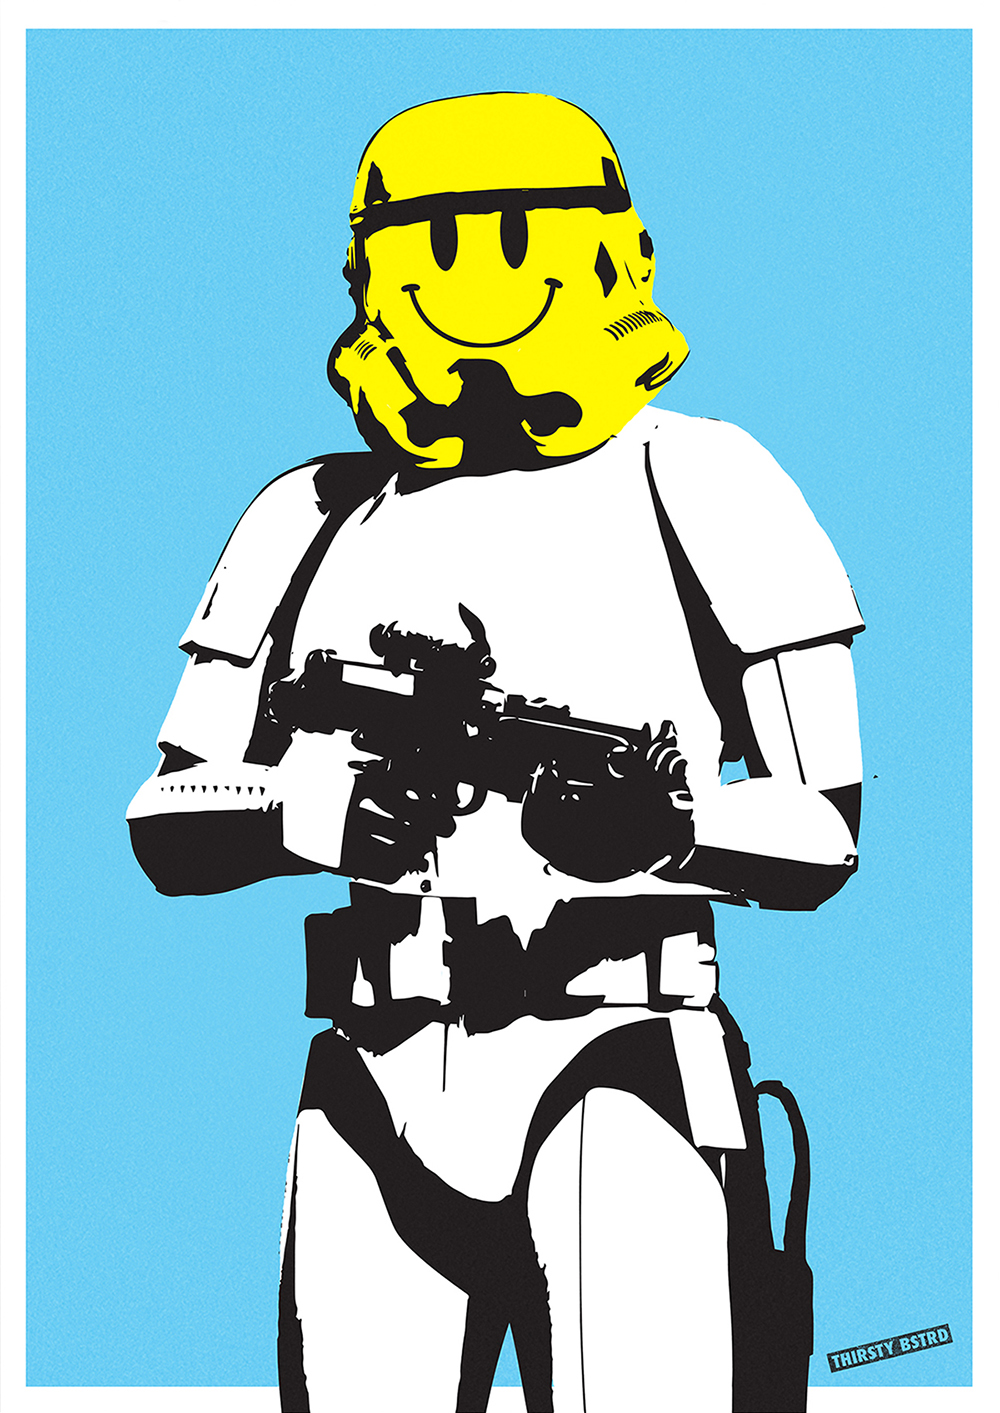 Bansky Turned into Star Wars by Thirsty Bstrd